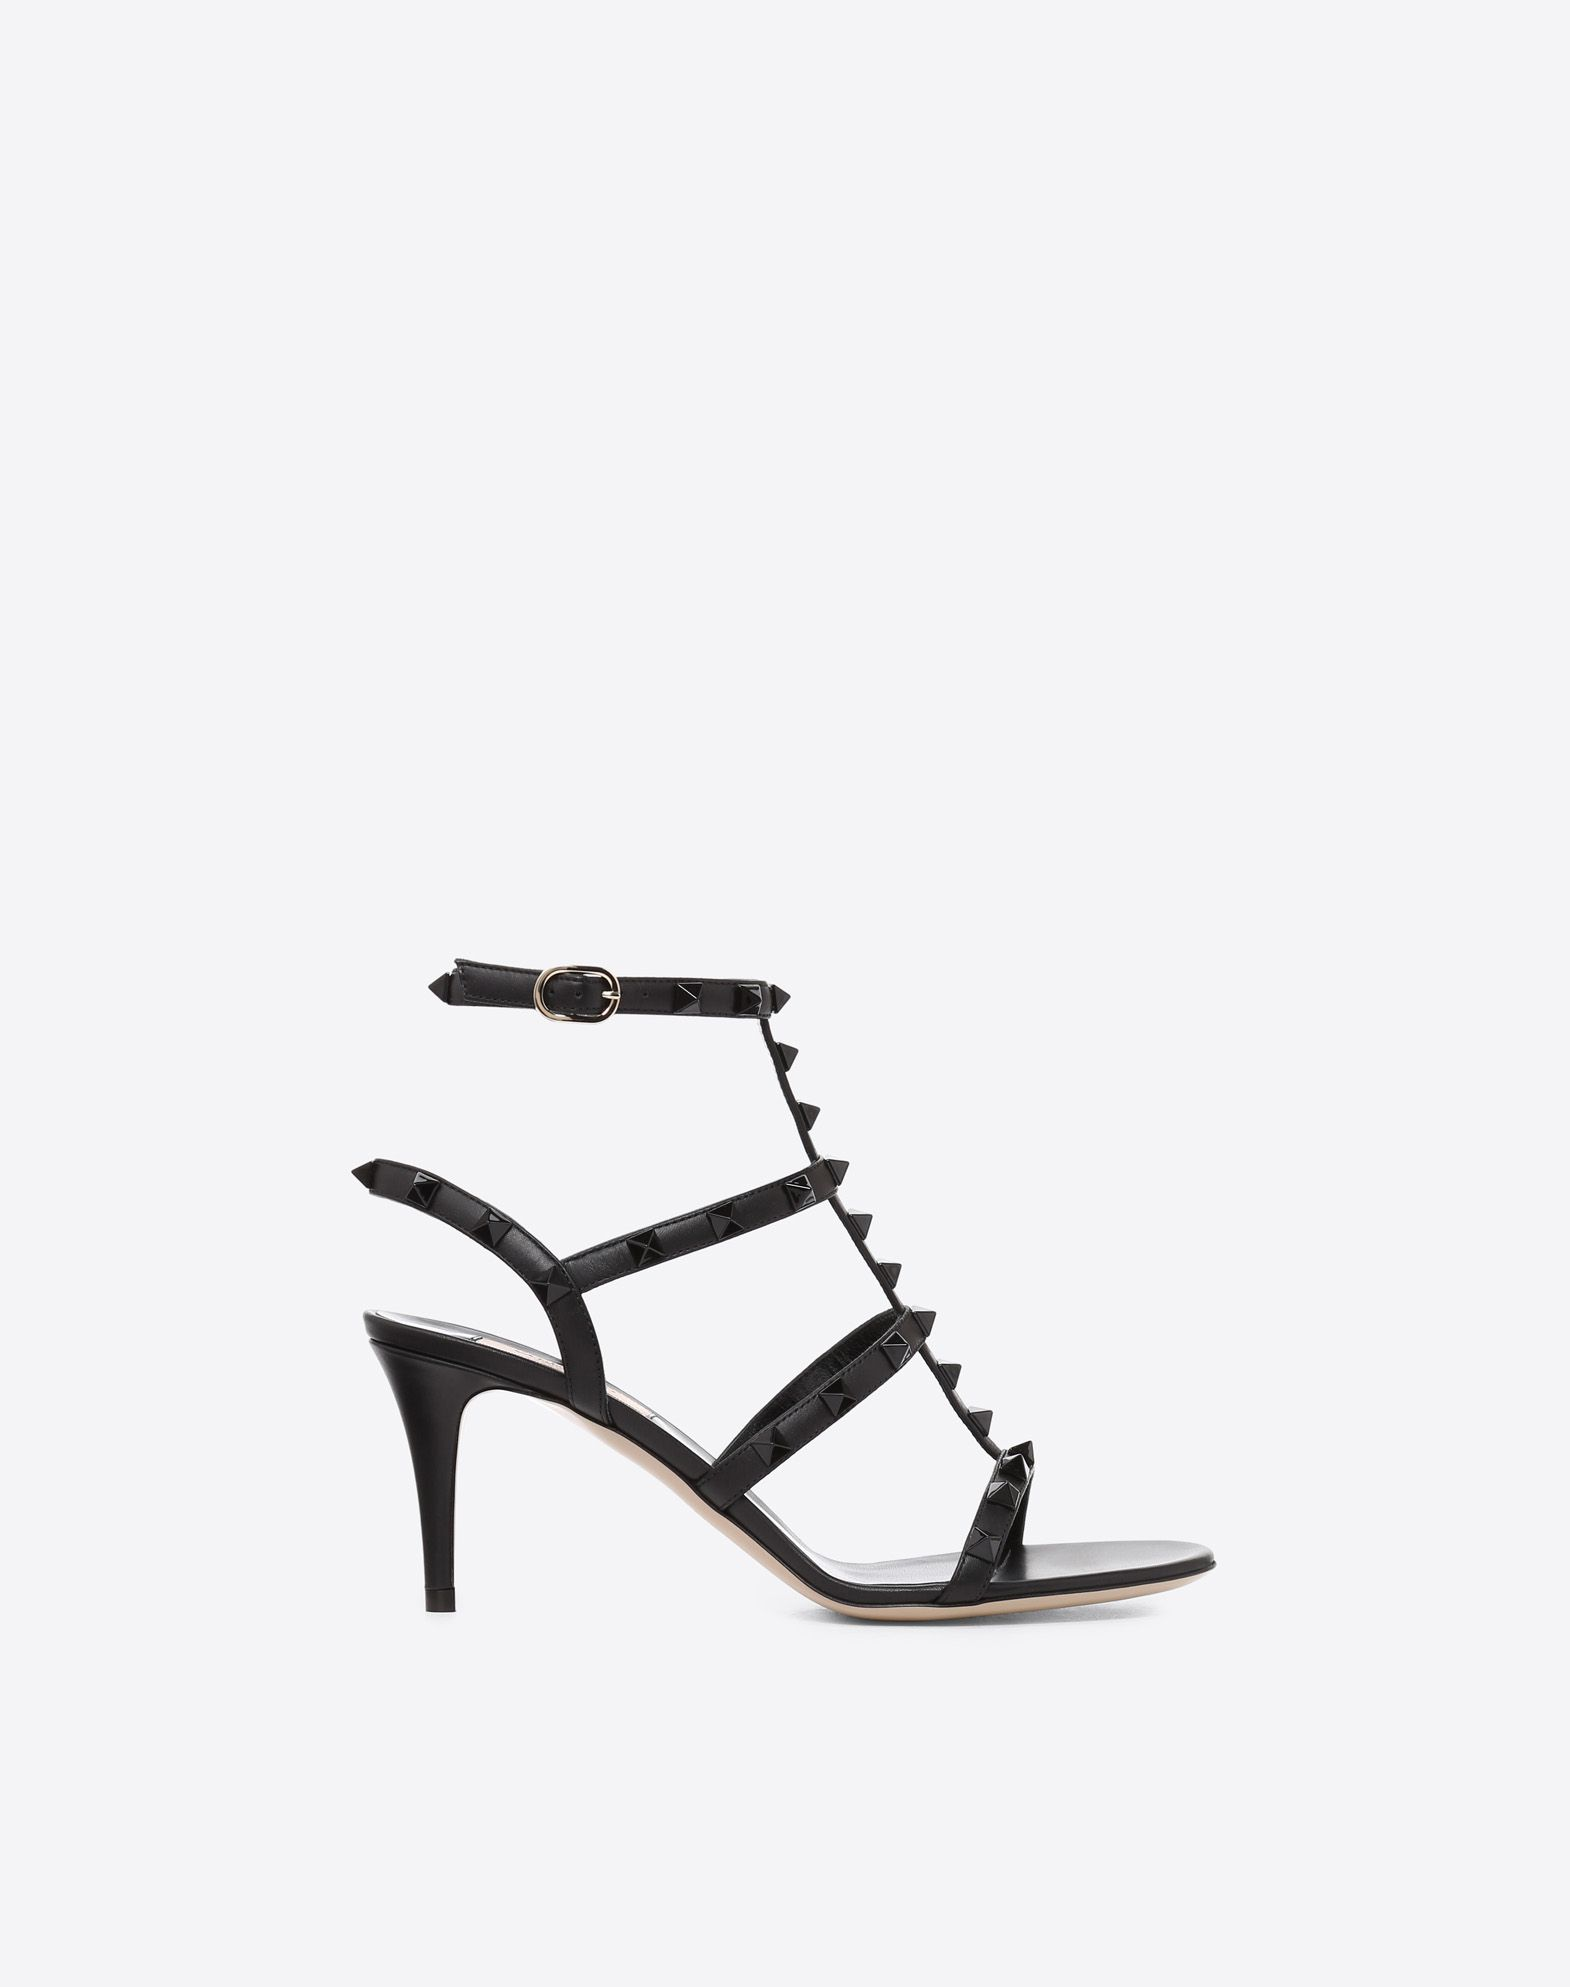 VALENTINO Studs Round toeline Spike heel Buckling ankle strap closure Basic solid colour Leather lining Leather sole  11470565ir